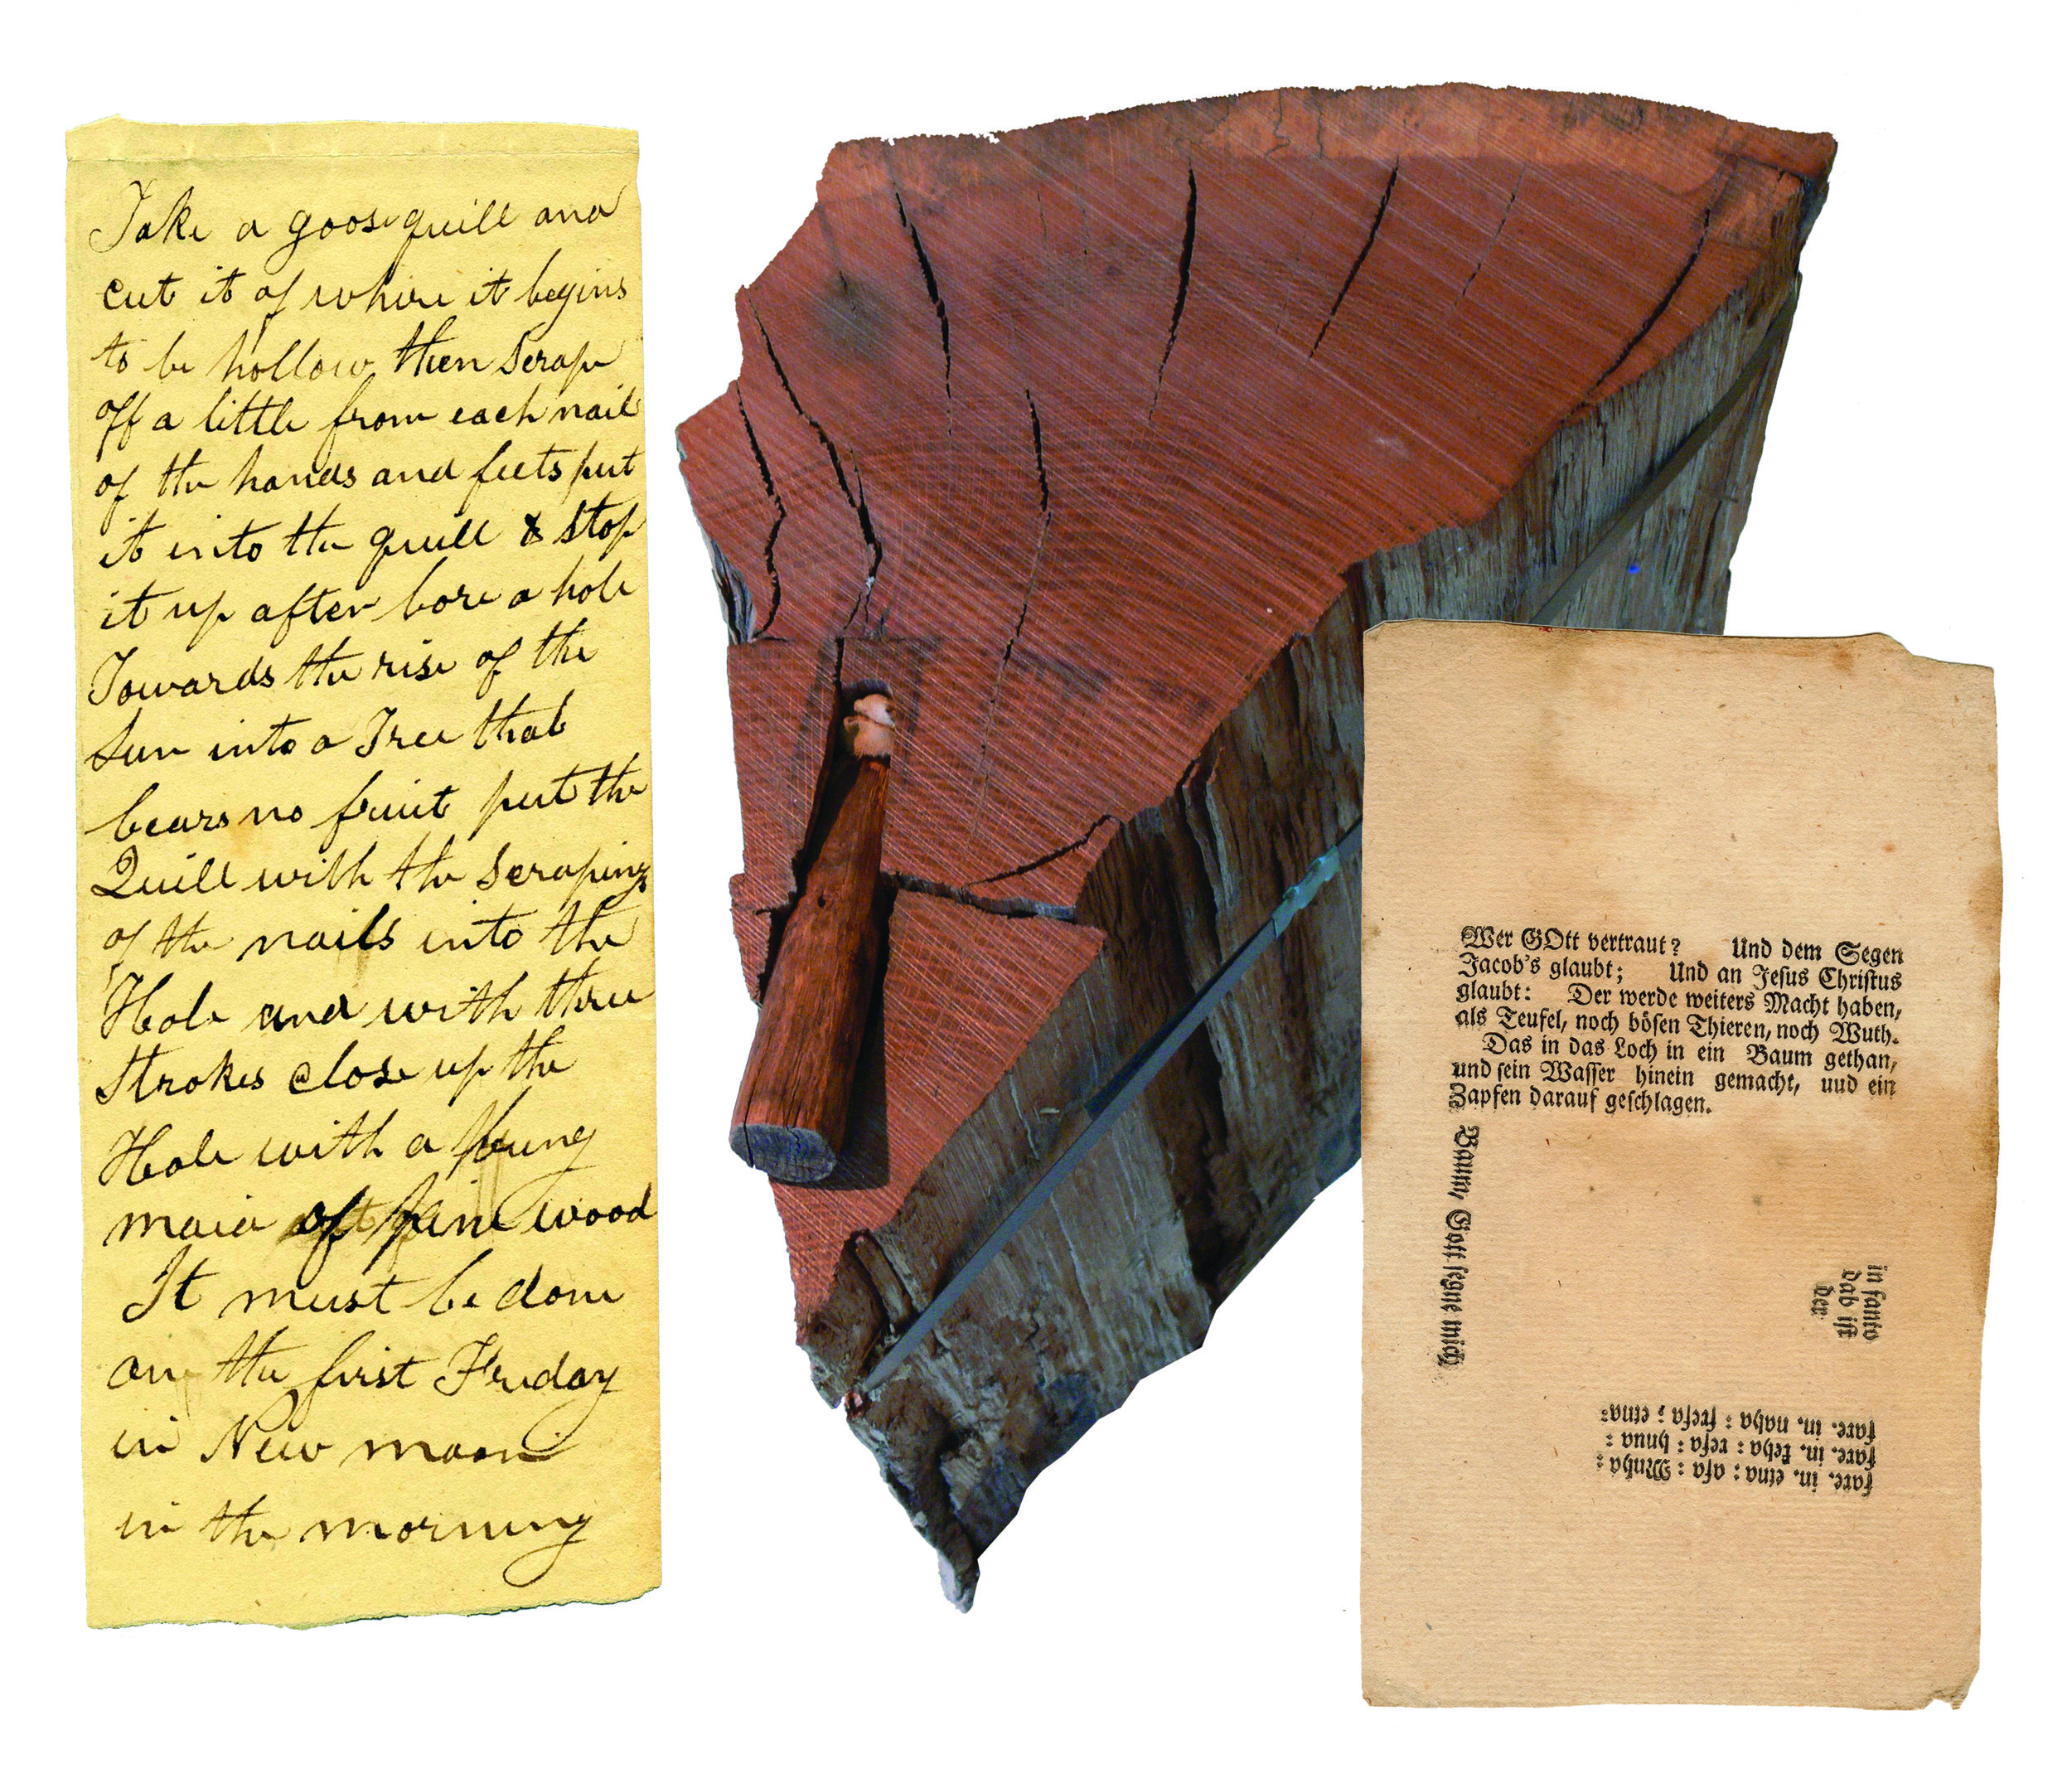 """Figure 5: The practice of """"plugging"""" illness into trees is well-documented among many cultures—Pennsylvania Dutch, Lenape, and English. Early accounts provide details of this procedure, and evidence of """"plugged"""" trees was still found in the 20th century.   Left : Manuscript Directions for Transfering Illness Into a Tree, ca. 1860-1880 Heilman Collection of Patrick J. Donmoyer.  These manuscript instructions provide a process for ritually transferring an illness into a tree: """"Take a goose quill and cut it of[f] where it begins to be hollow, then scrape off a little from each nail of the hands and feets put it into the quill & stop it up after bore a hole towards the rise of the sun into a tree that bears no fruit put the quill with the scraping of the nails into the hole and with three strokes close up the Hole with a bung maid of pine wood. It must be done on the first Friday in new moon in the morning.""""  The timing of this ritual was crucial, for the new moon was believed to exert a force down and inward, driving the illness into the tree; it was believed that the movement of the sun westward would reinforce the same movement of the illness into the tree. Friday was considered a beneficial day to begin such an undertaking because of its association with the crucifixion of Christ on Good Friday, and the initiation of the salvation and healing of the world in Christian tradition.    Middle : Plugged Oak Tree Remnant, Mid-19th century, [Schaefferstown, Lebanon County] Thomas R. Brendle Museum, Historic Schaefferstown.  Discovered by a farmer chopping wood on a farm between Reistville and Schaefferstown, Lebanon County. According to local interpretation, the tree was believed to have been close to a century old when the peg and ritual deposit was placed for transferring illness into the tree, over a century prior to having been cut down. One hundred twenty annual growth rings were counted from the bark to the peg.   Right : """" Baum-Segen """" Broadside Prayer and Tree Plug"""